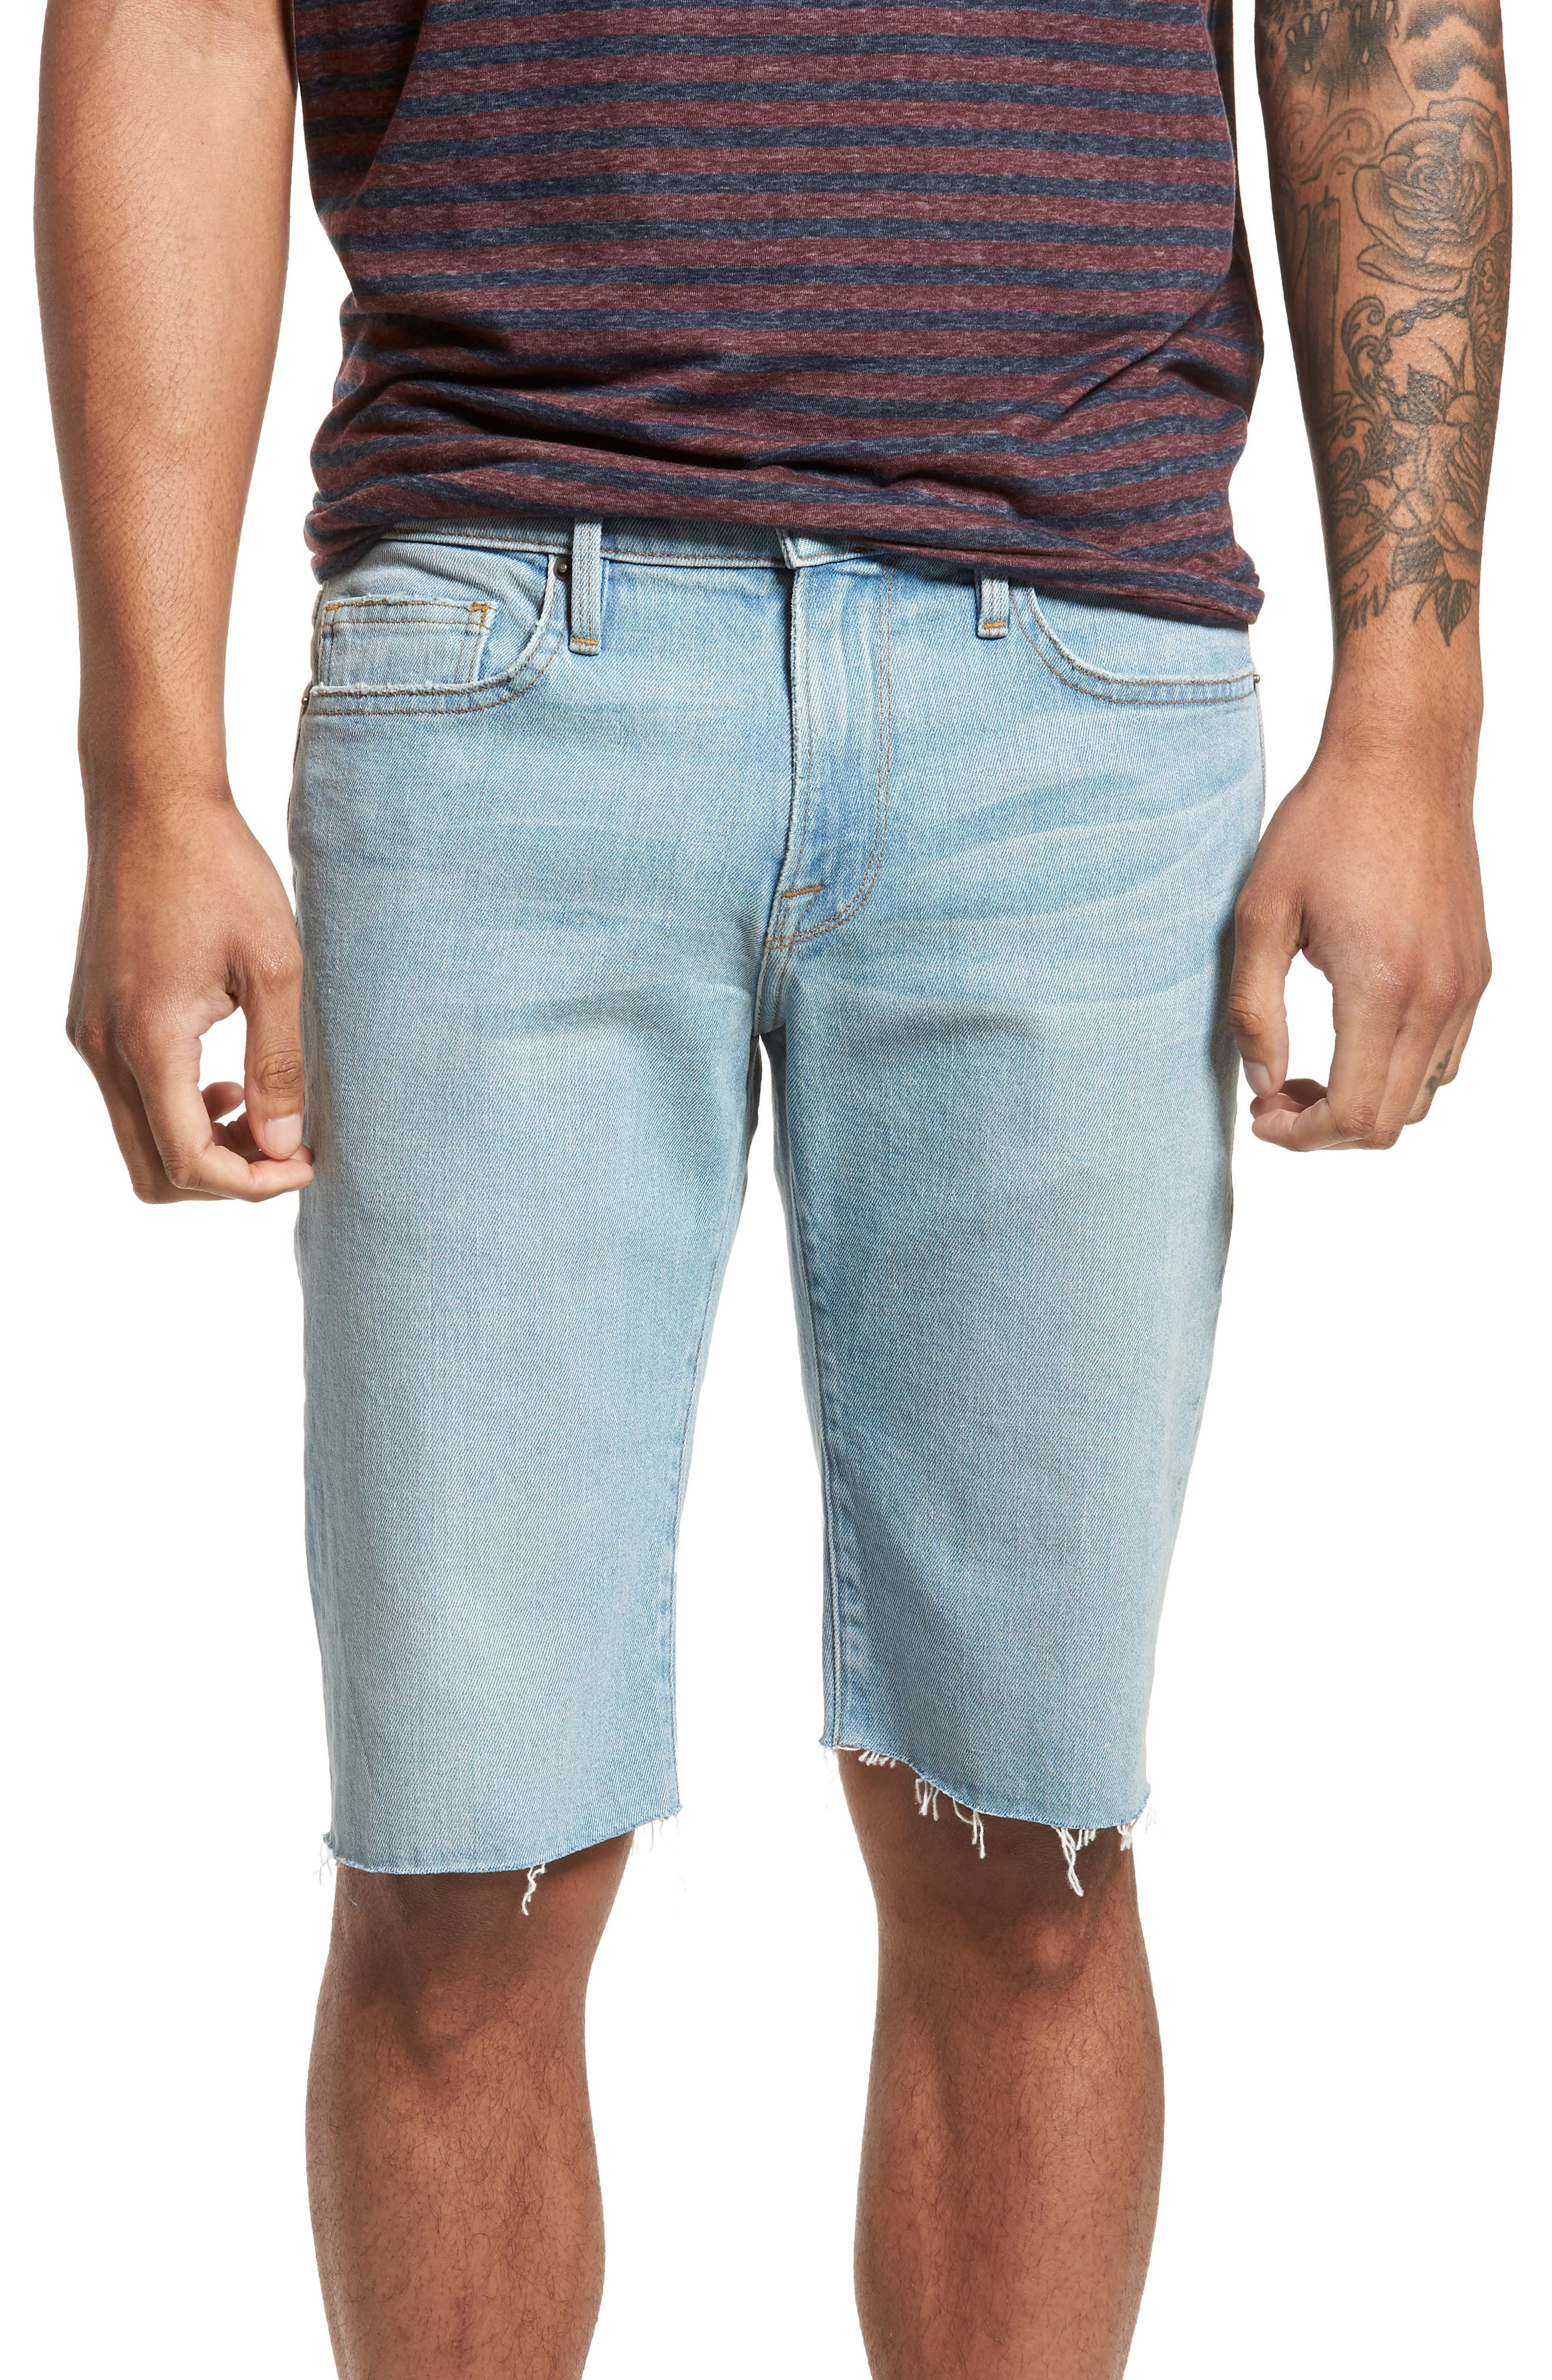 L'Homme Cutoff Denim Shorts,                         Main,                         color, Crosby